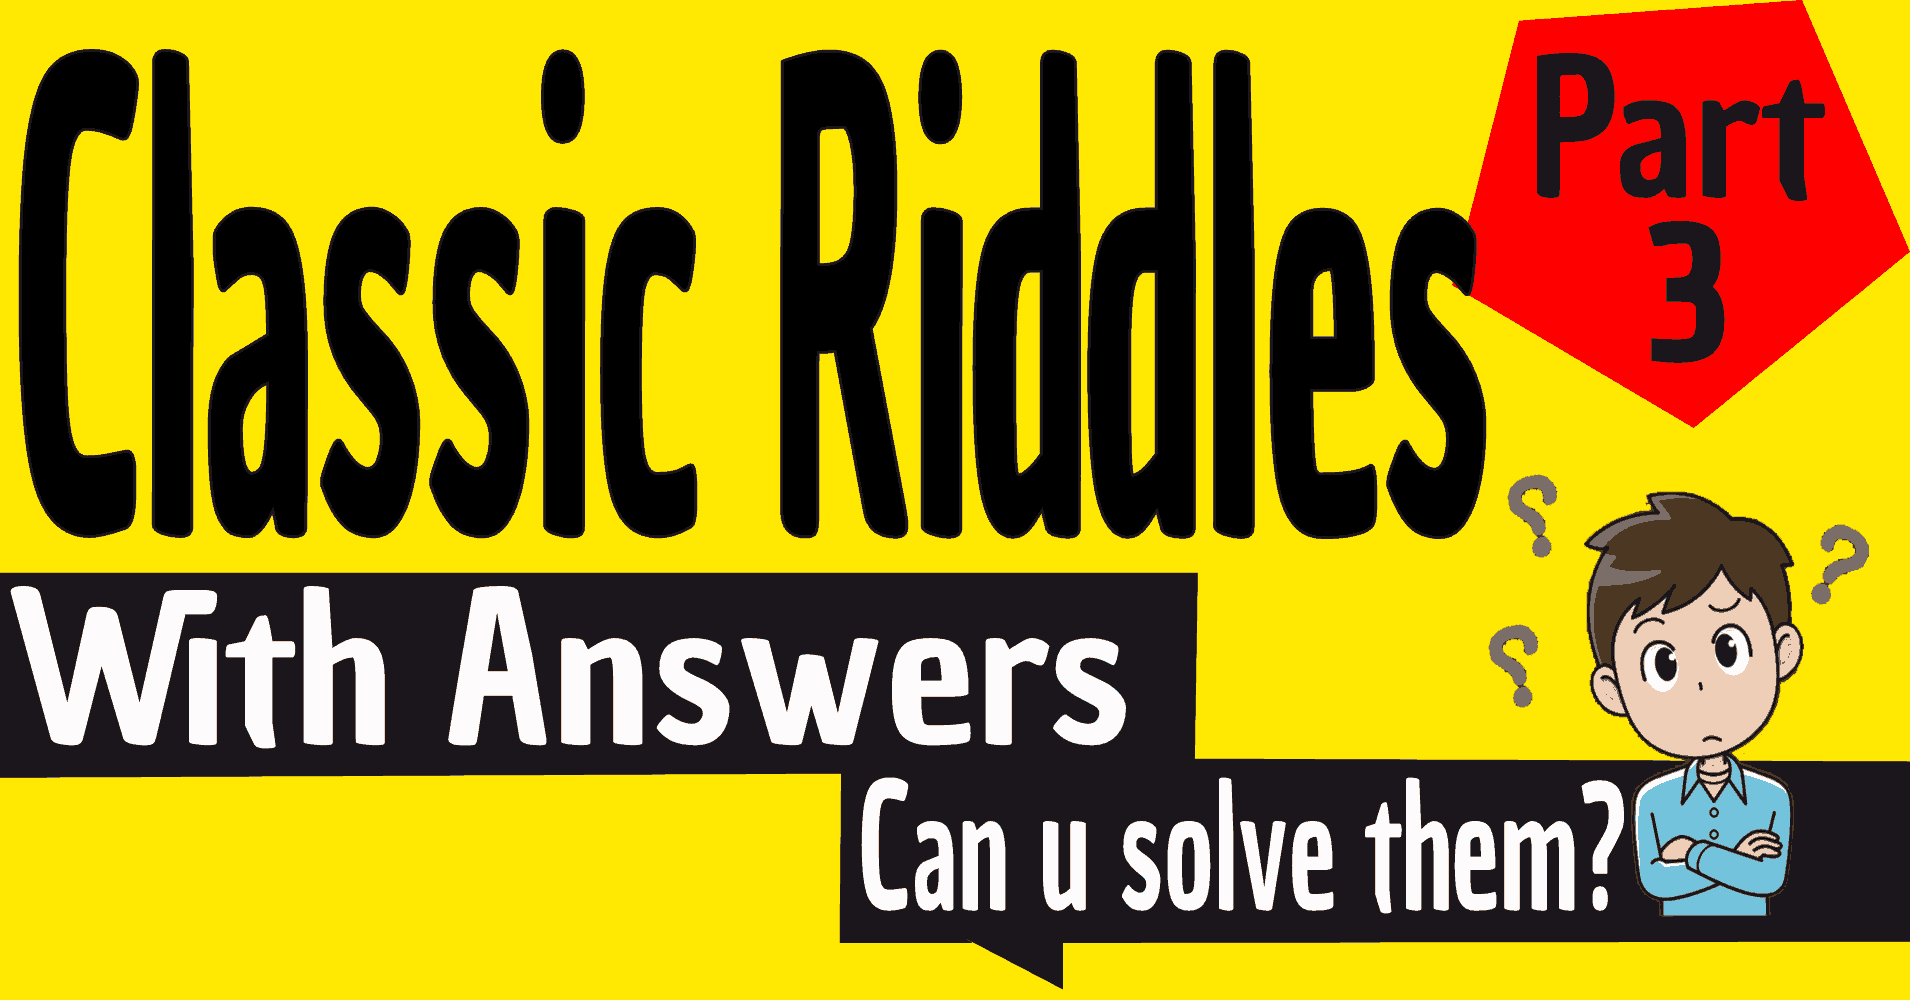 Classic Riddles With Answers